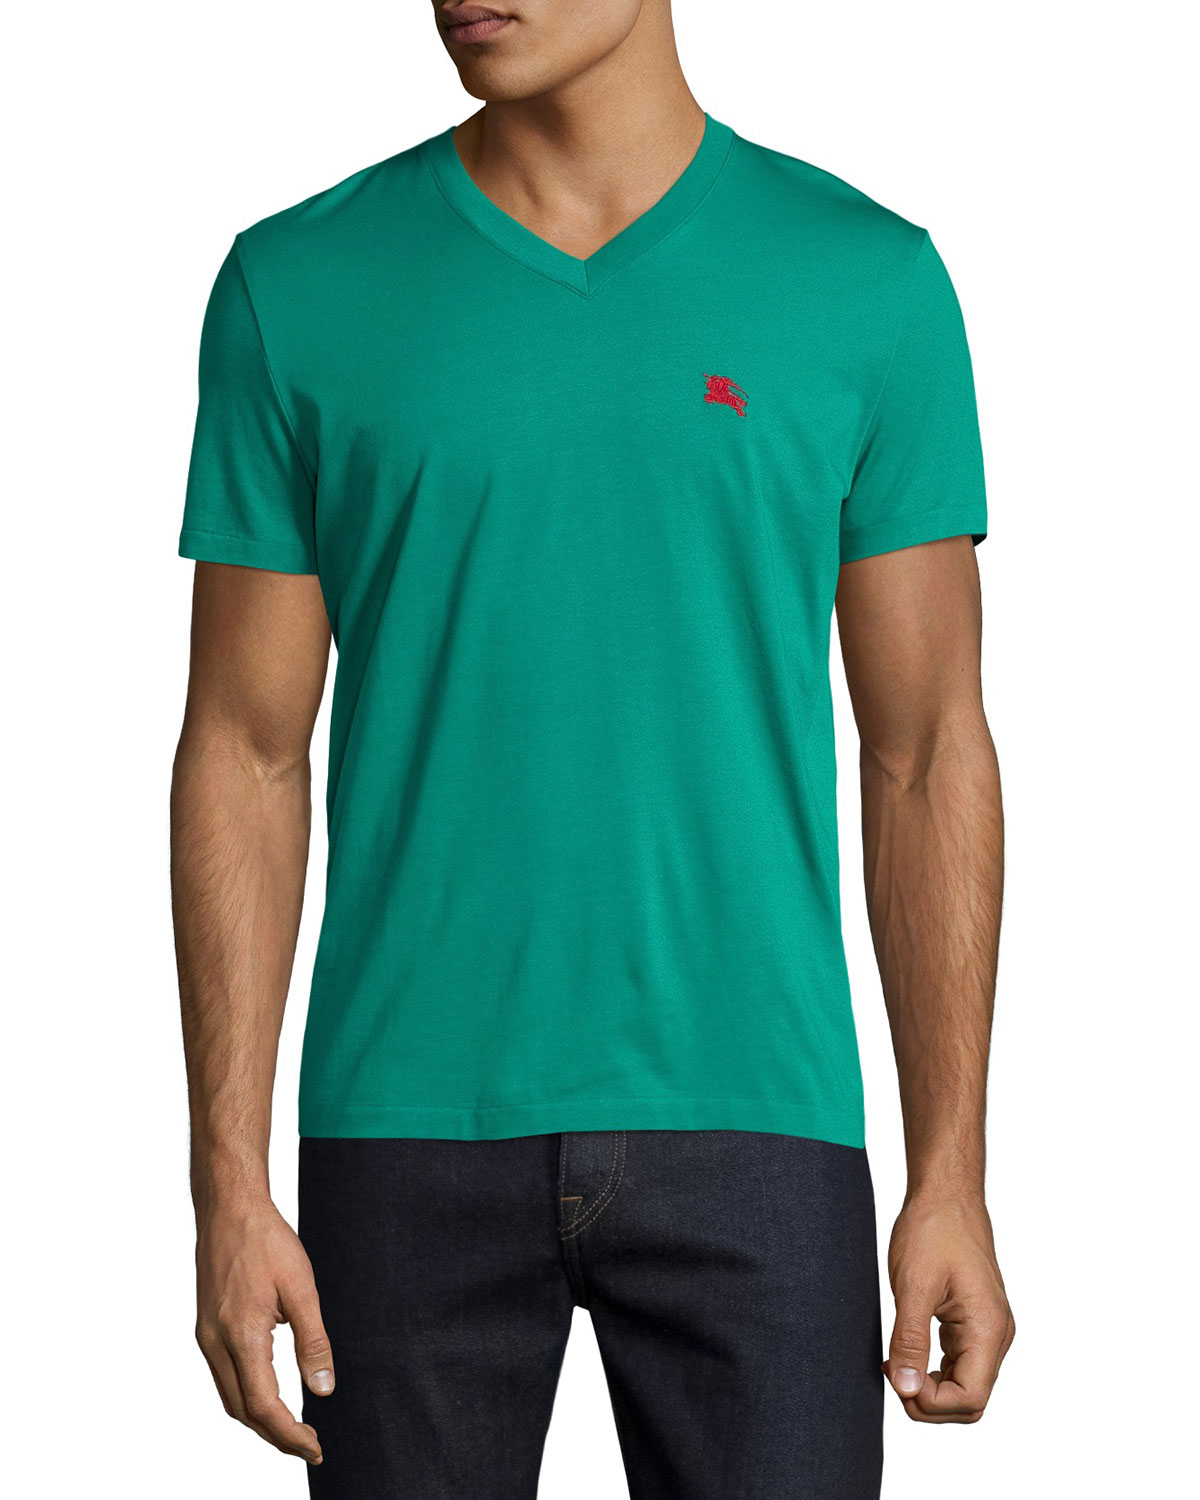 Lindon Cotton V-Neck T-Shirt, Bright Jade